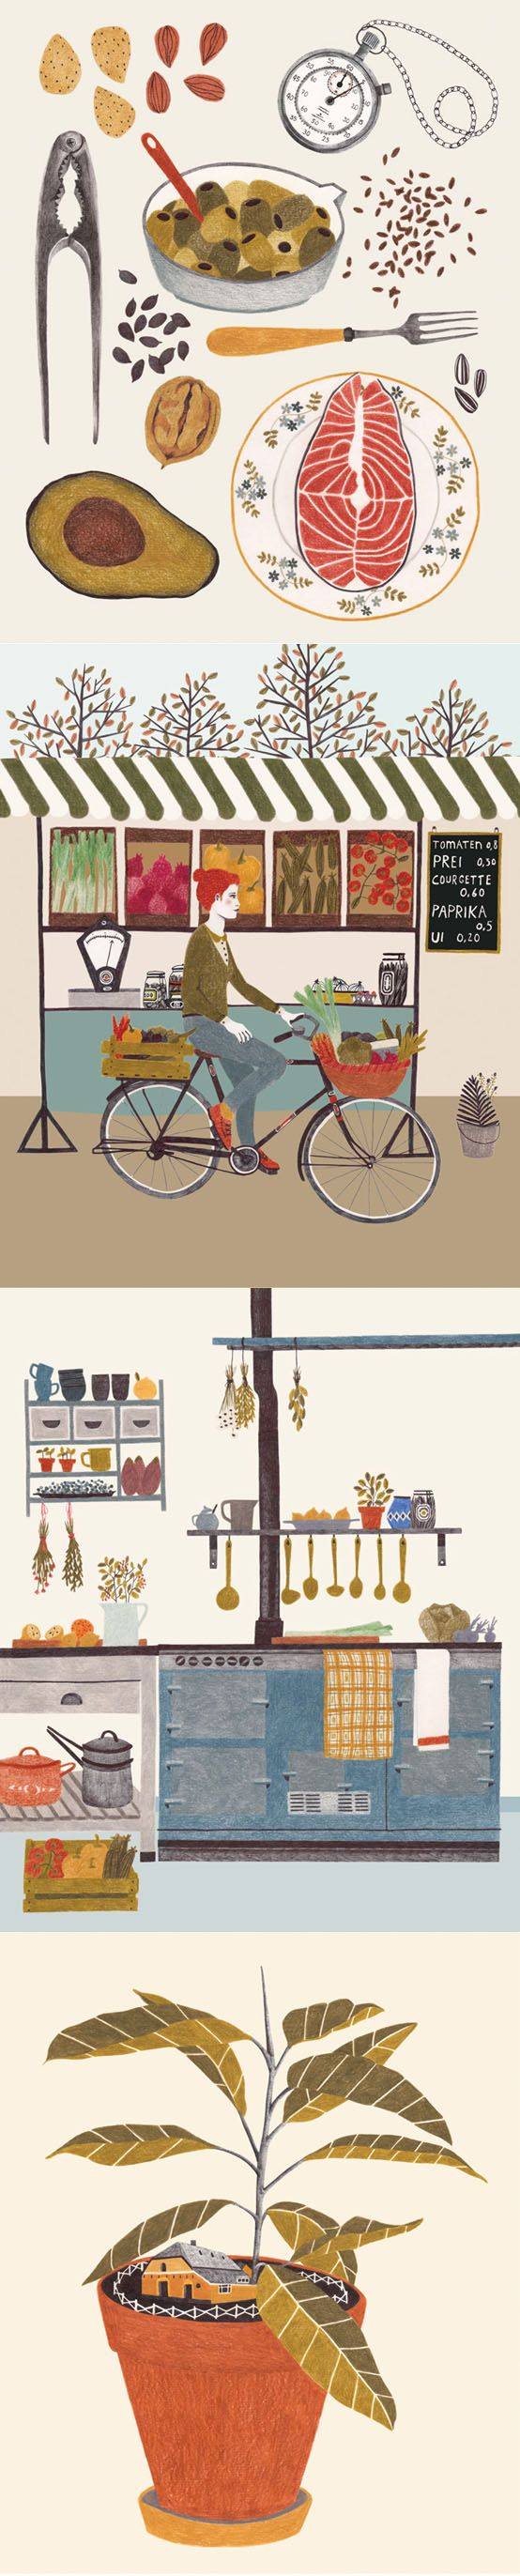 Lieke van der Vorst - check it out here: http://www.artisticmoods.com/art-print-by-lieke-van-der-vorst/